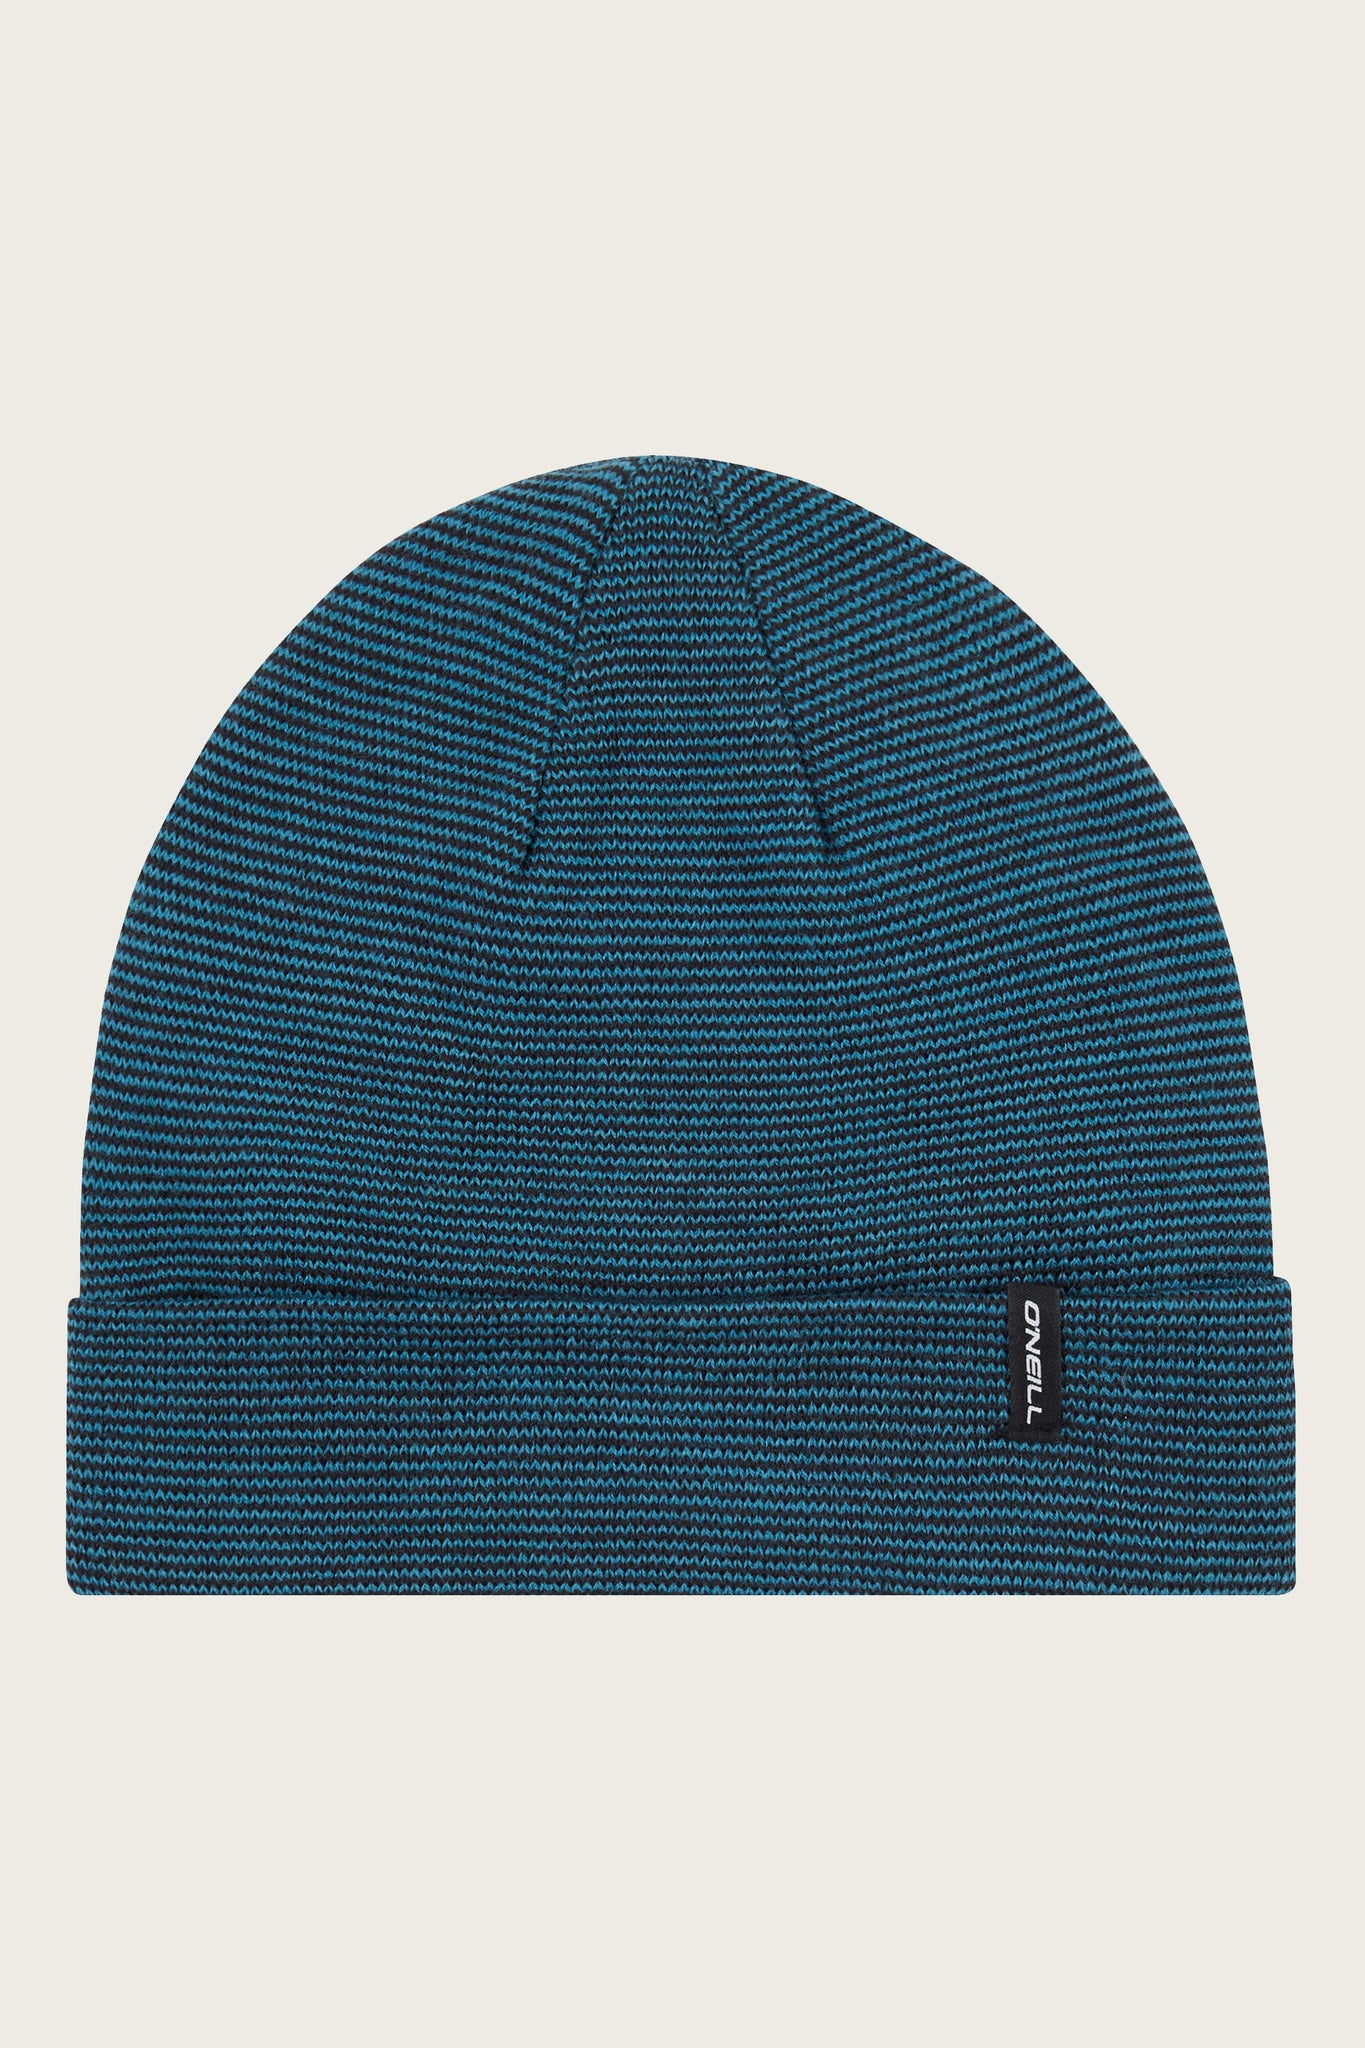 All Year Beanie - Seaport Blue | O'Neill